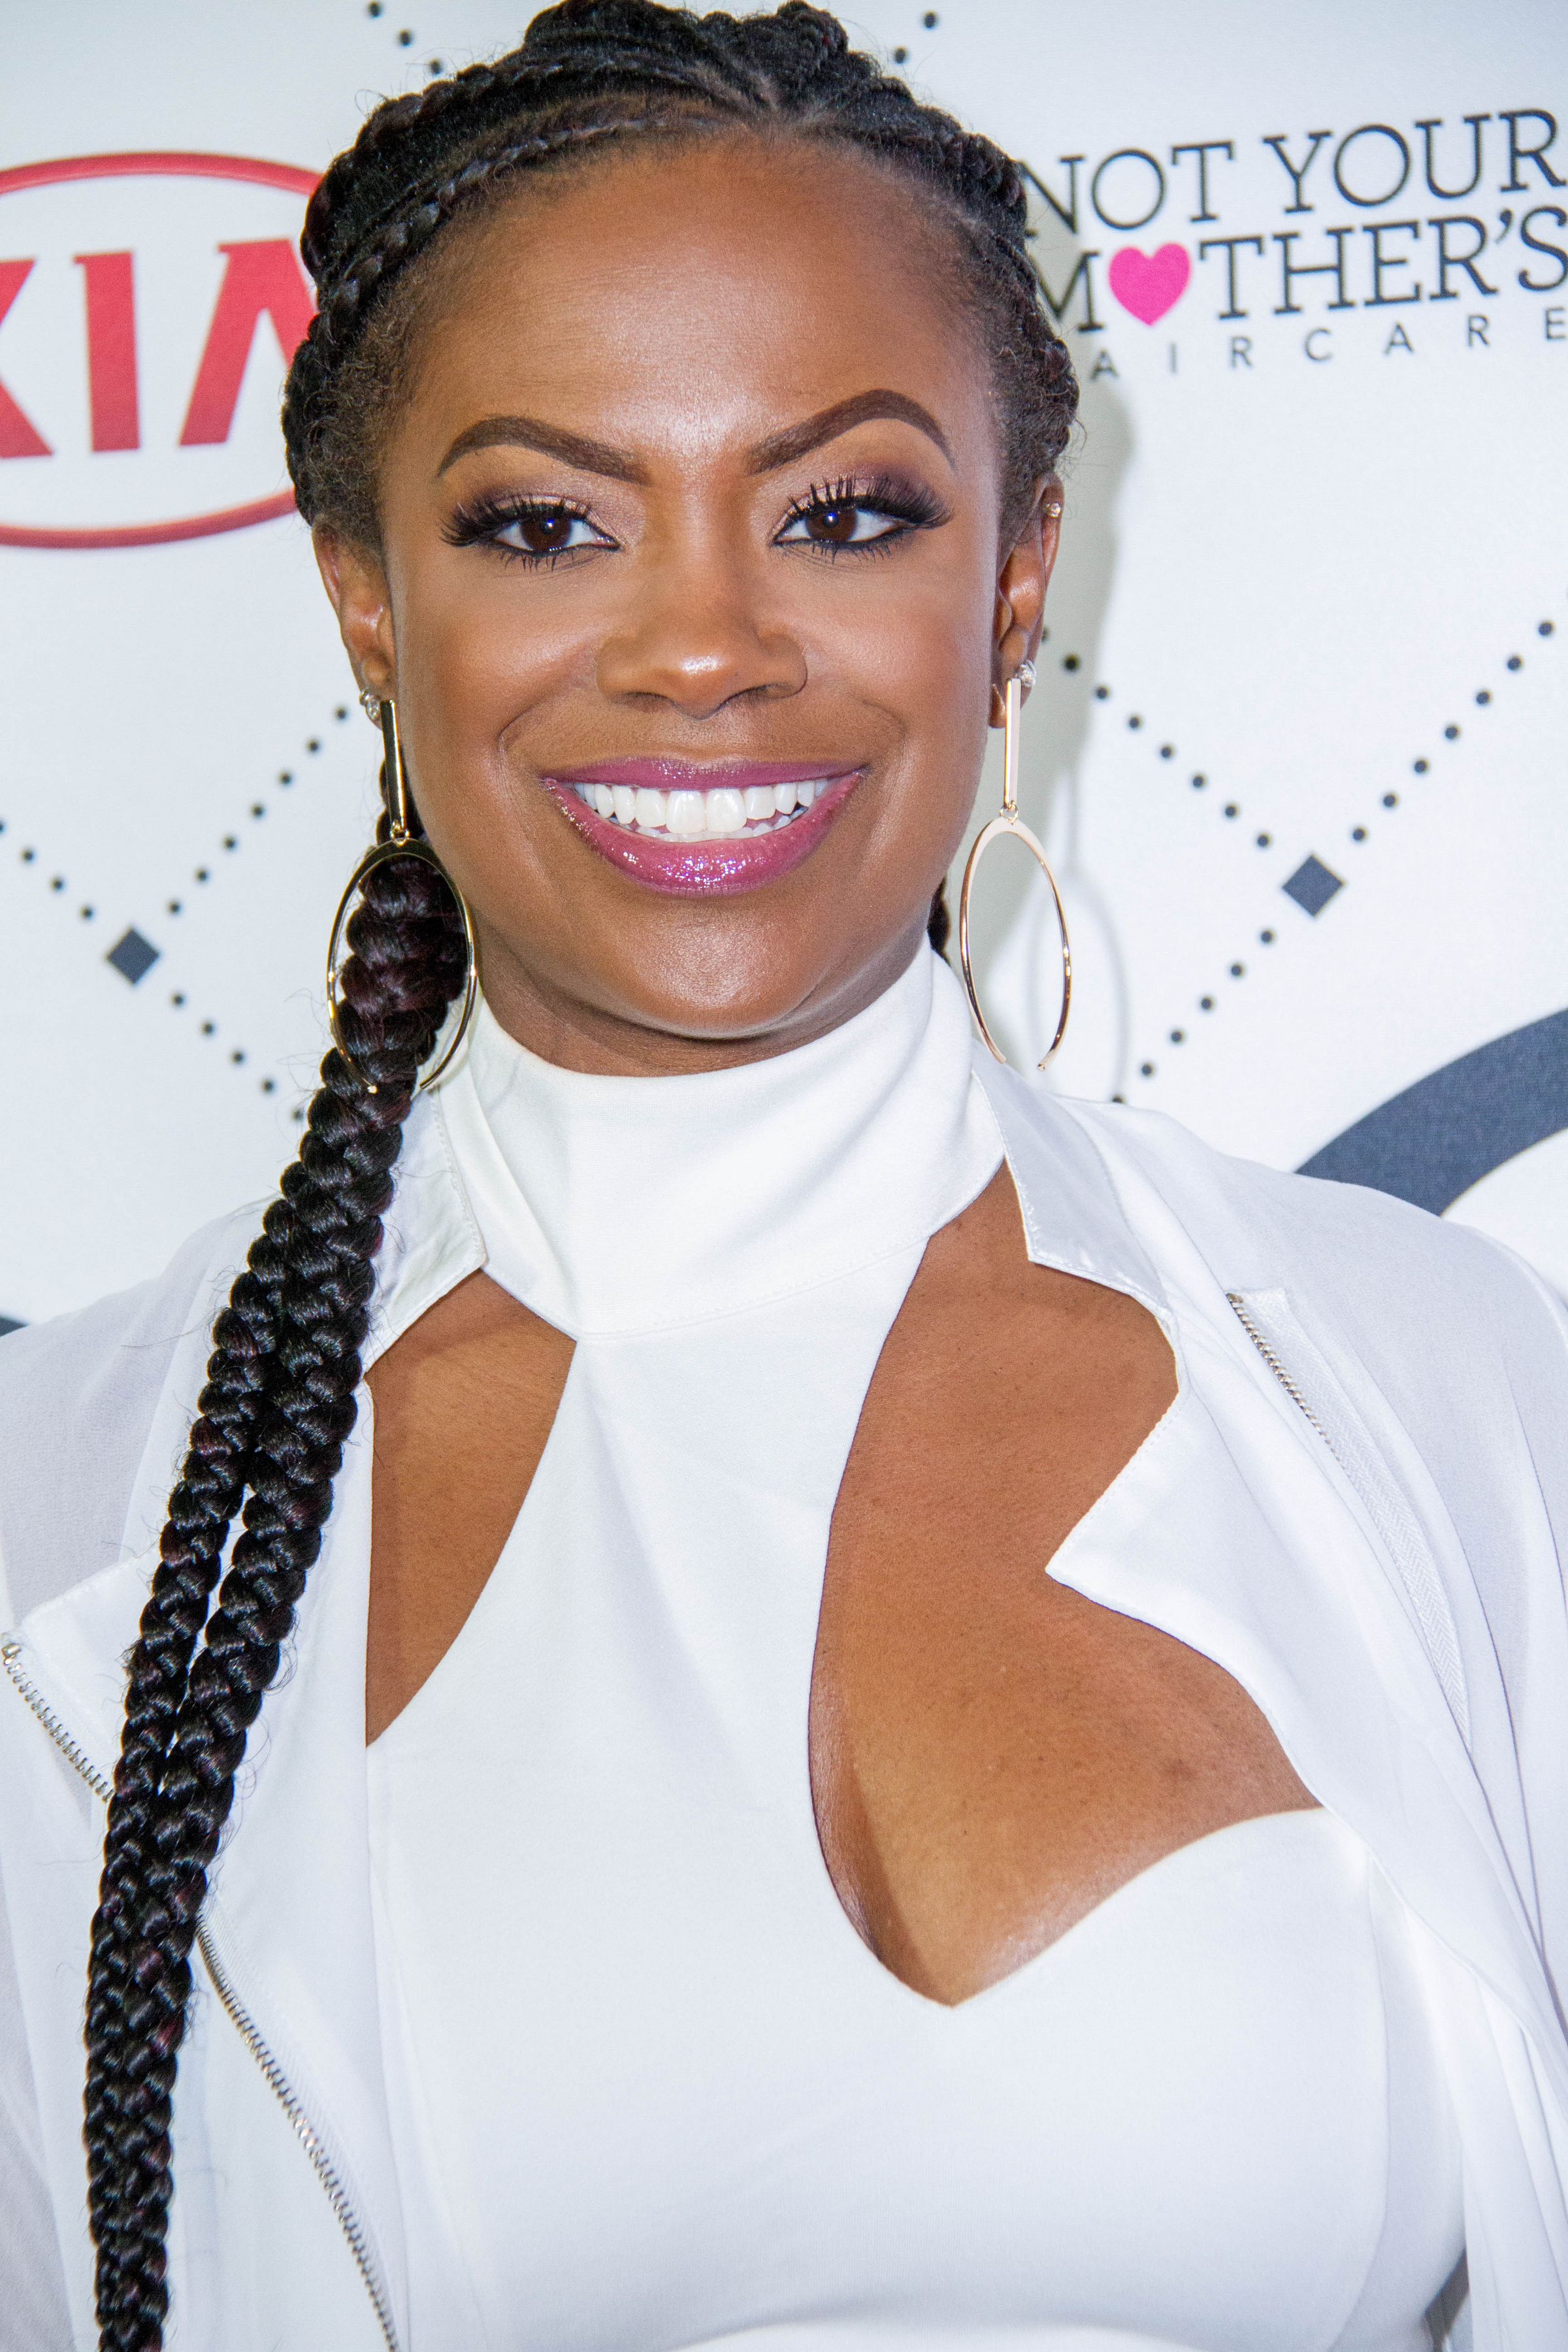 Kandi Burruss Stands With Moâ Nique In A Touching ...